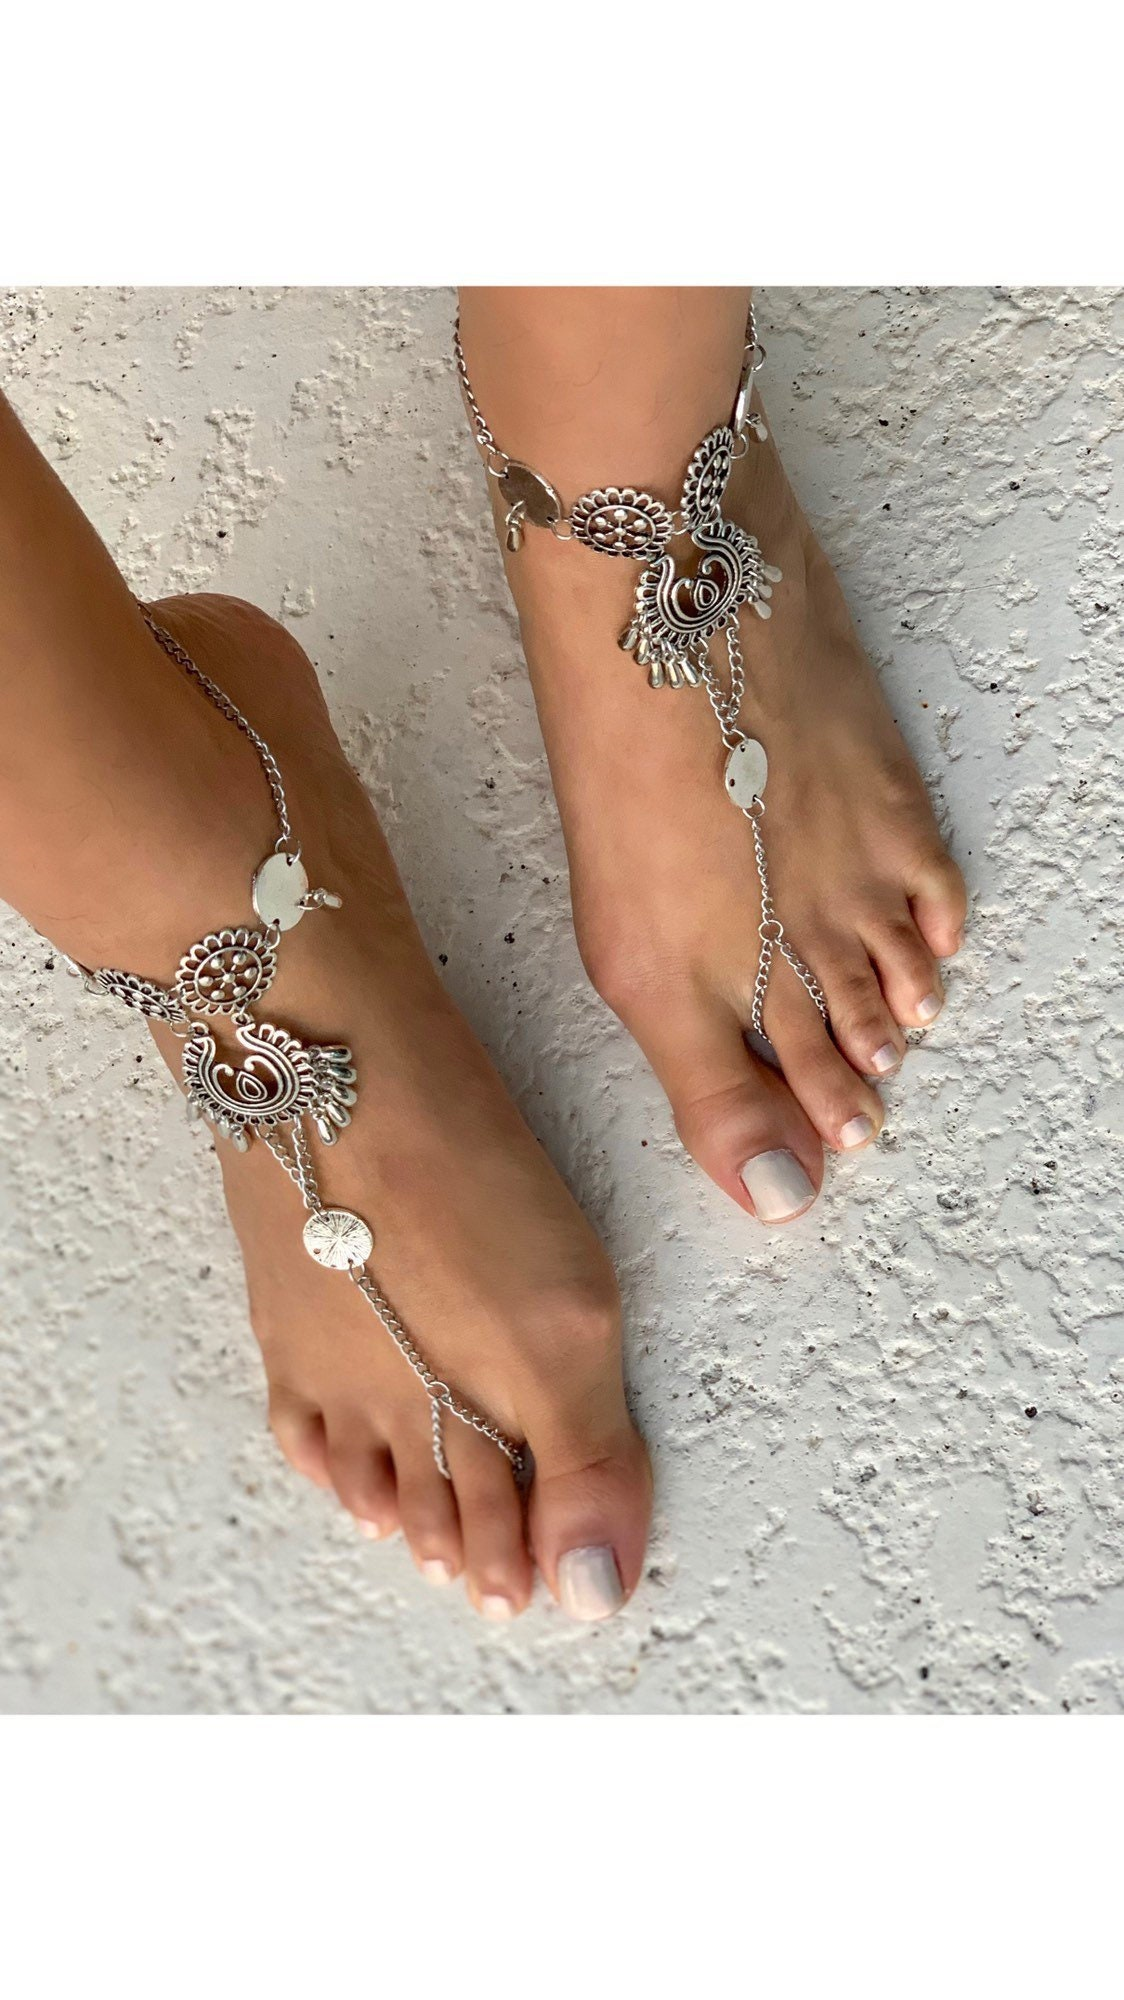 2656c7e1372fb Silver antique finish coin barefoot sandals foot chain foot etsy jpg  1124x2000 Bling foot jewelry